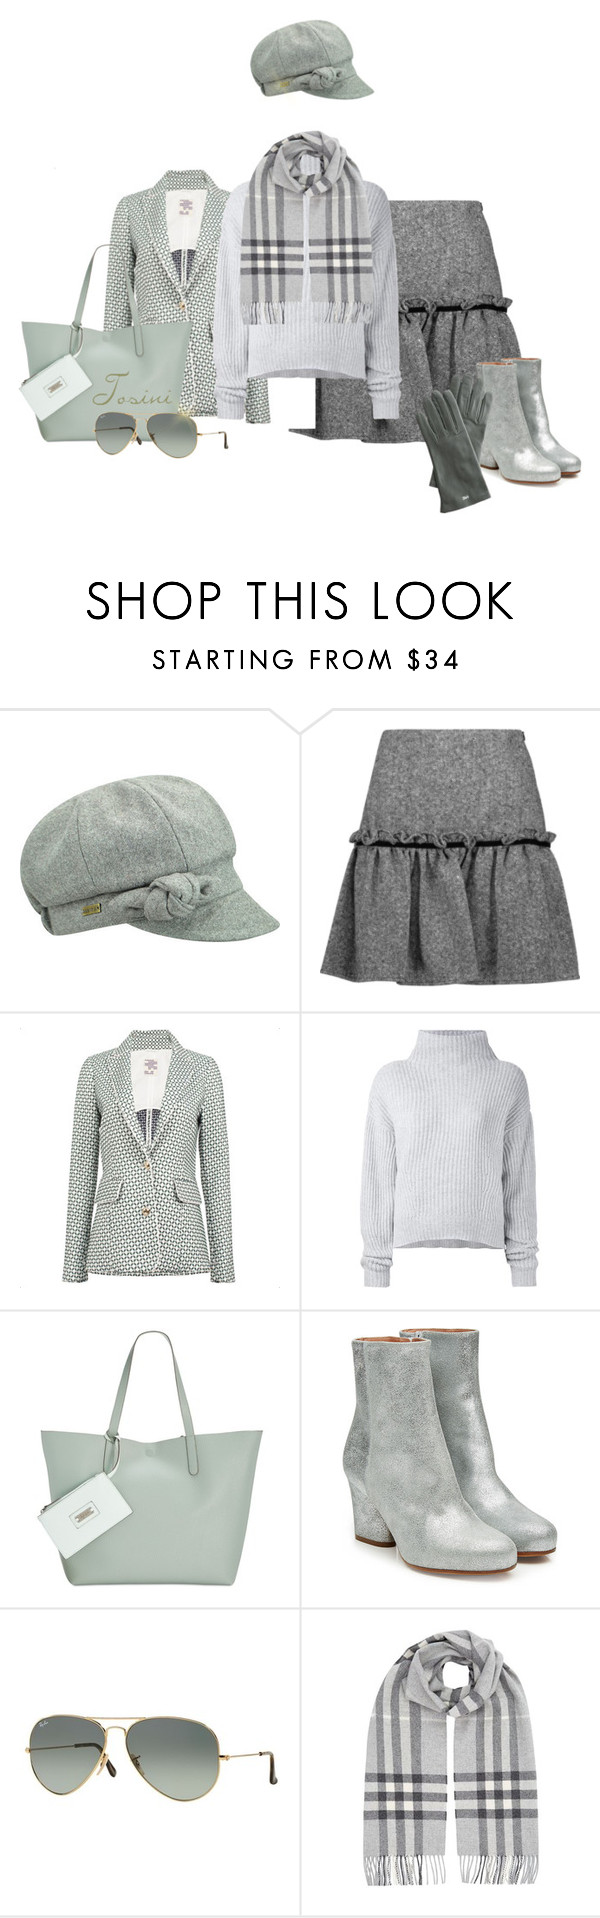 """""""Minty Winter"""" by tosini ❤ liked on Polyvore featuring Betmar, Raoul, Baum und Pferdgarten, Le Kasha, Style & Co., Maison Margiela, Ray-Ban, Burberry, Mark & Graham and Winter"""